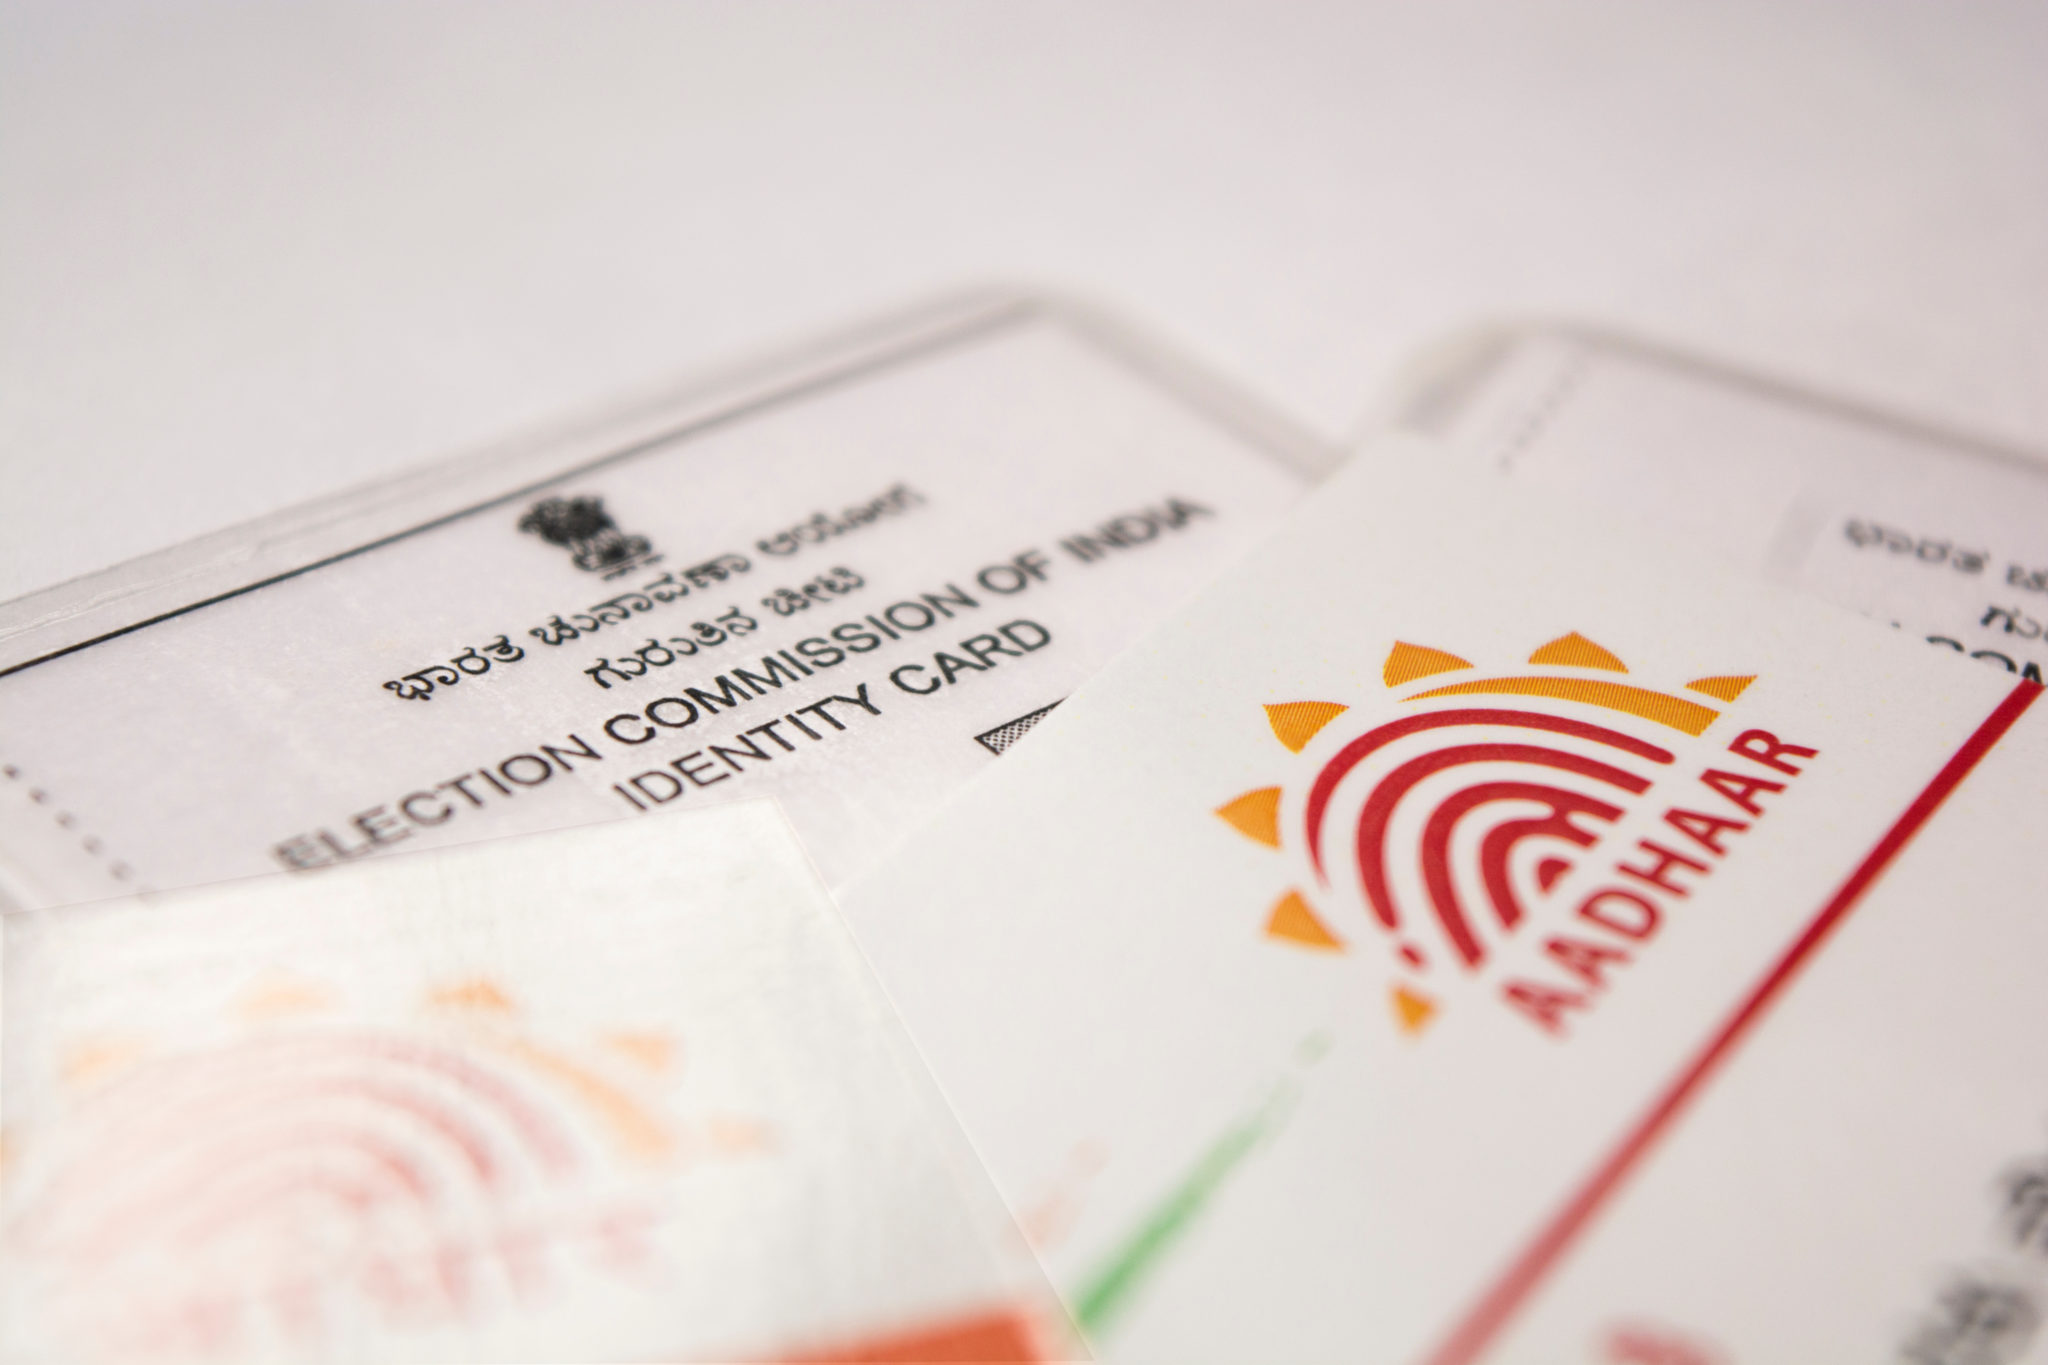 Linking voter IDs with Aadhaar numbers: Over 200 concerned citizens write to ECI